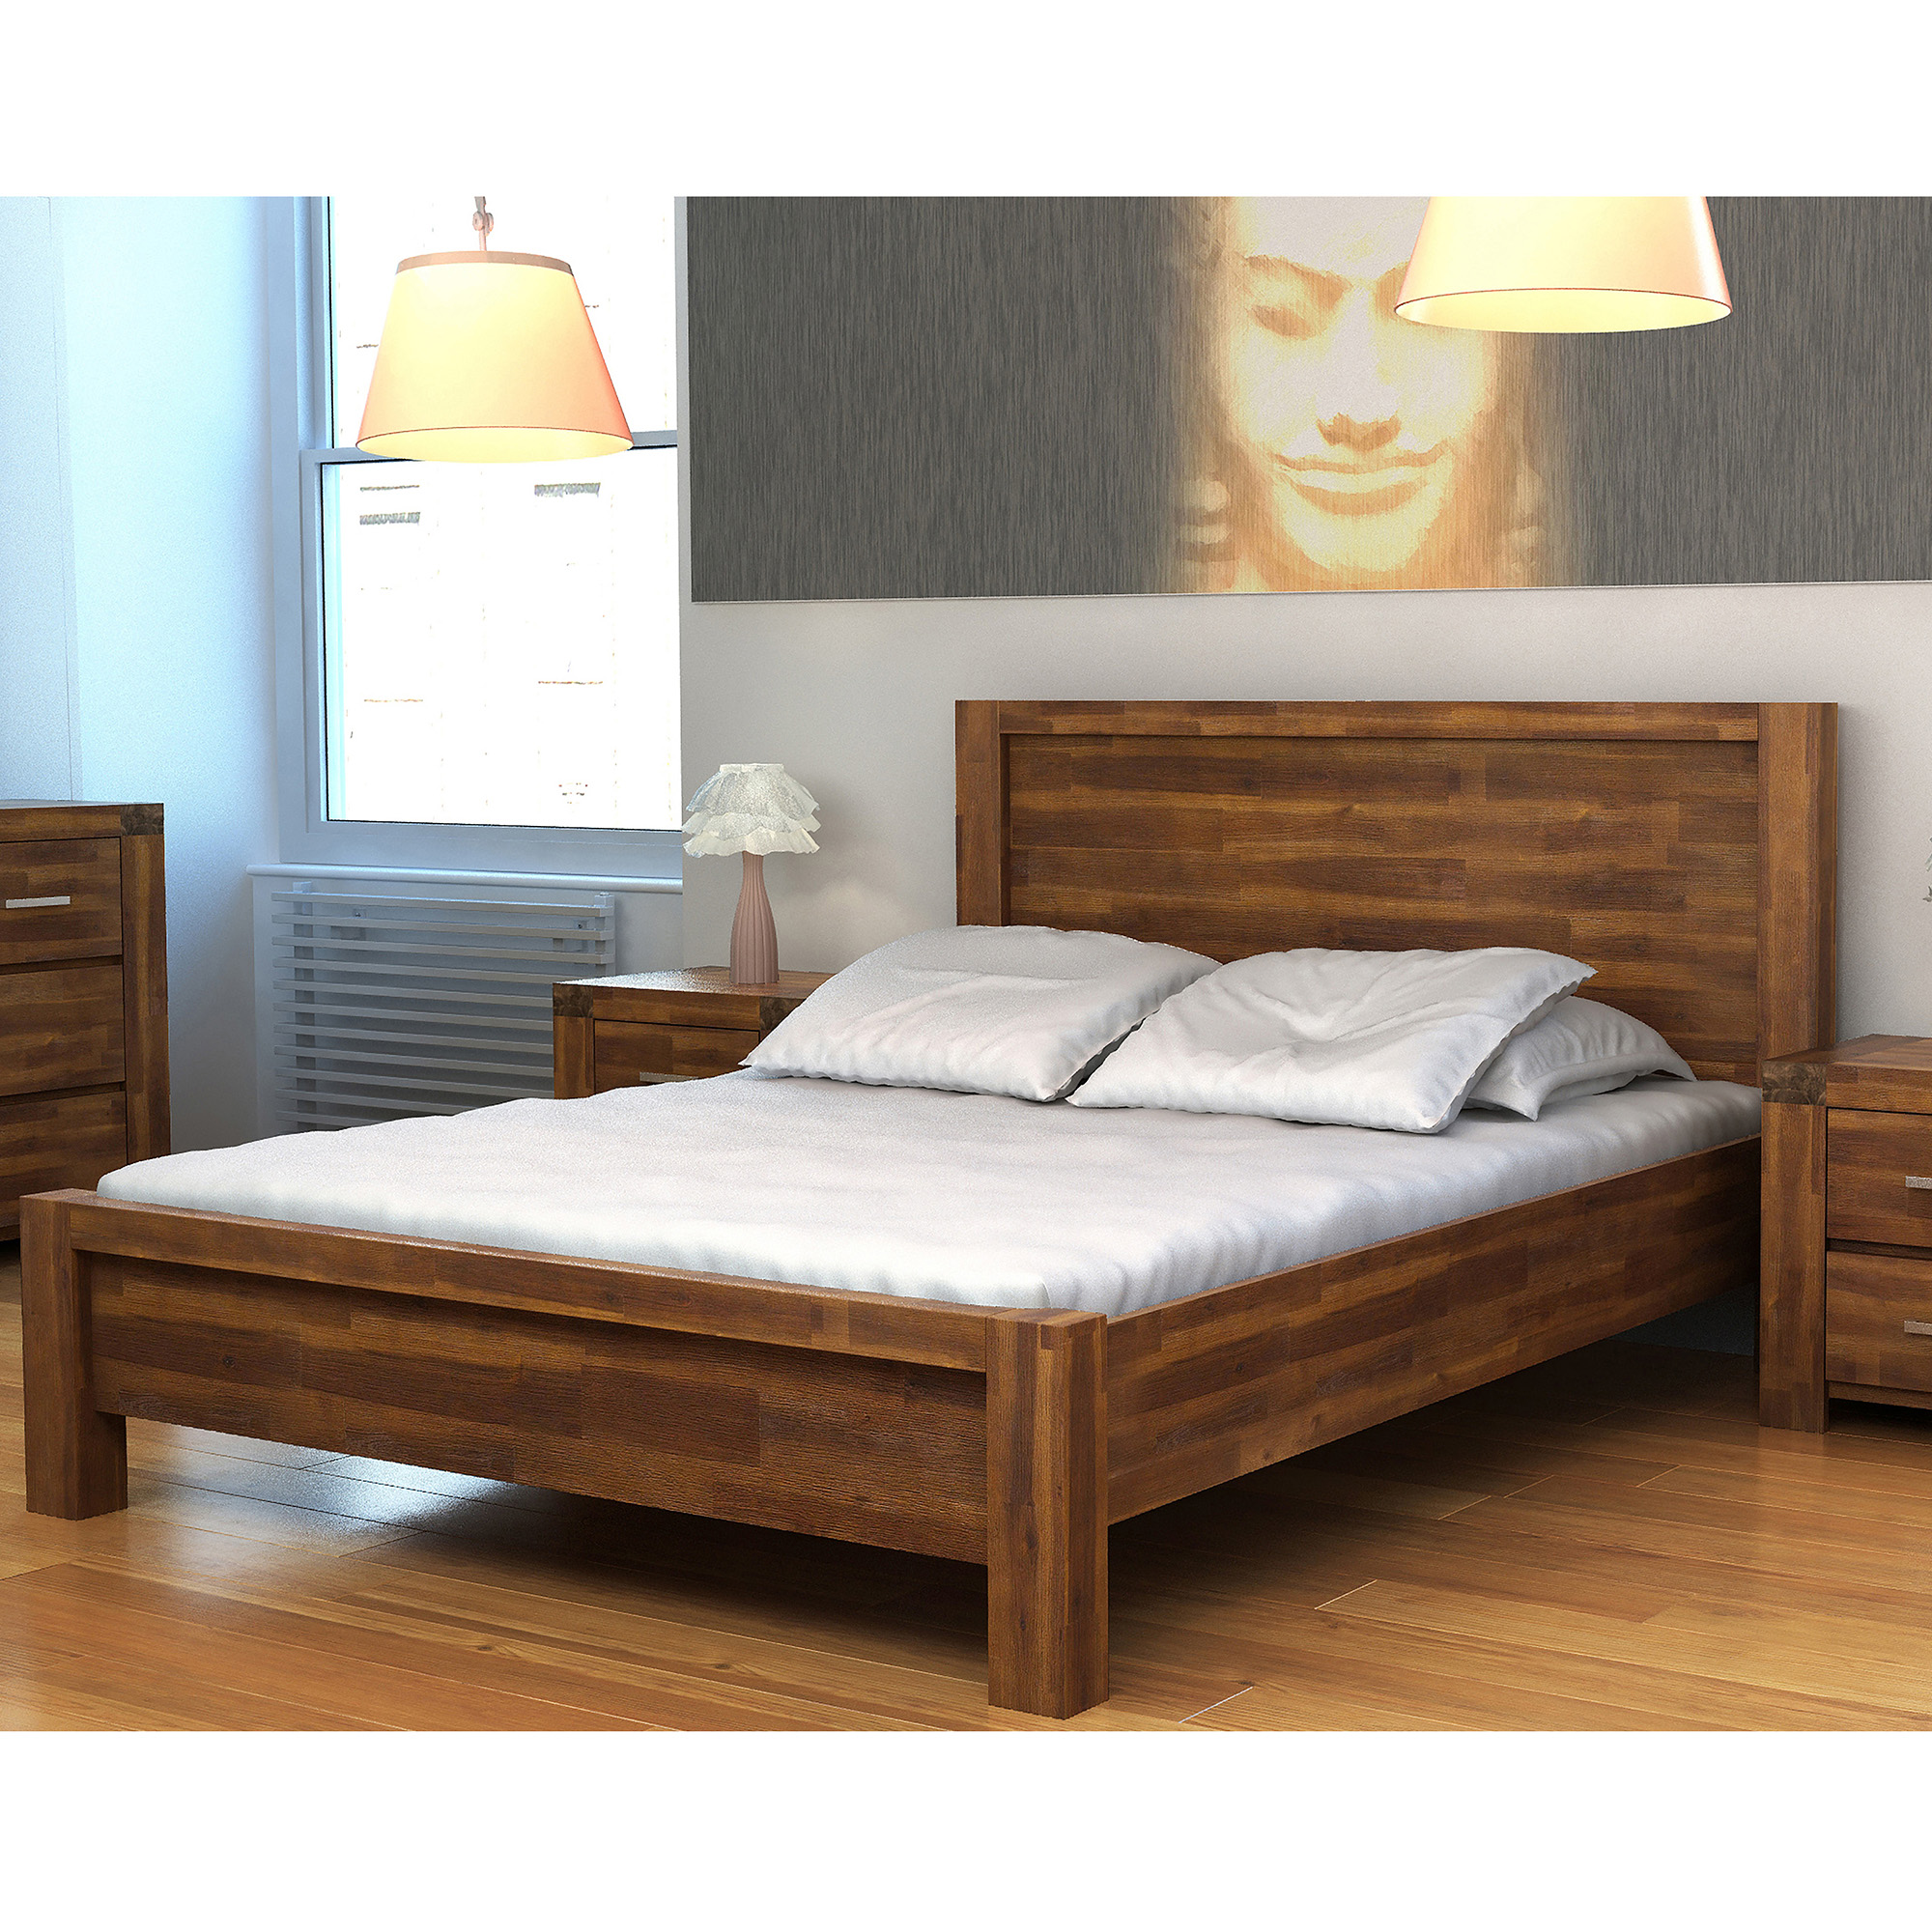 Wooden Bed By Inspire